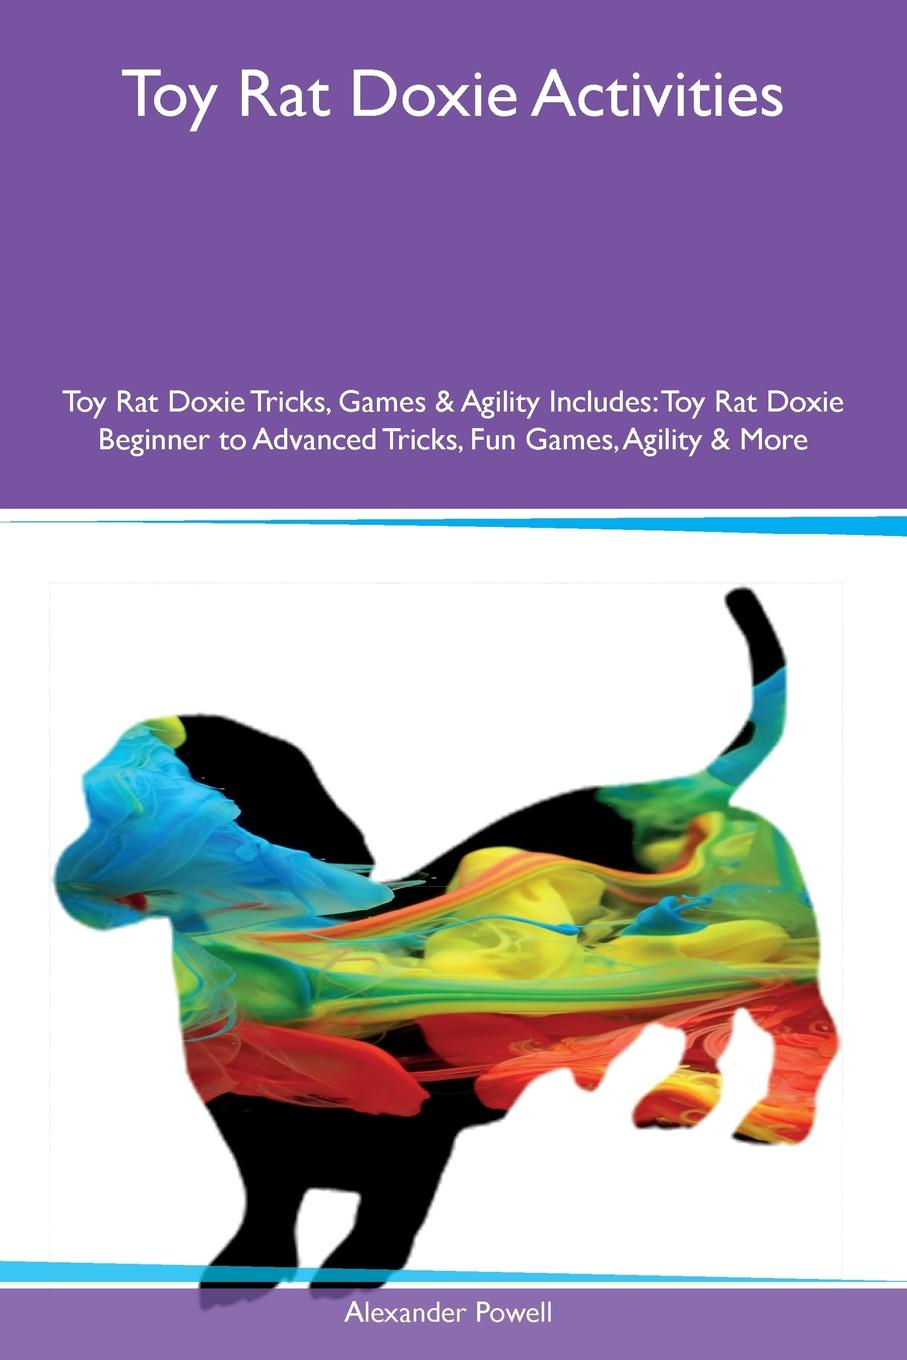 Alexander Powell Toy Rat Doxie Activities Toy Rat Doxie Tricks, Games & Agility Includes. Toy Rat Doxie Beginner to Advanced Tricks, Fun Games, Agility & More the rat brain in stereotaxic coordinates